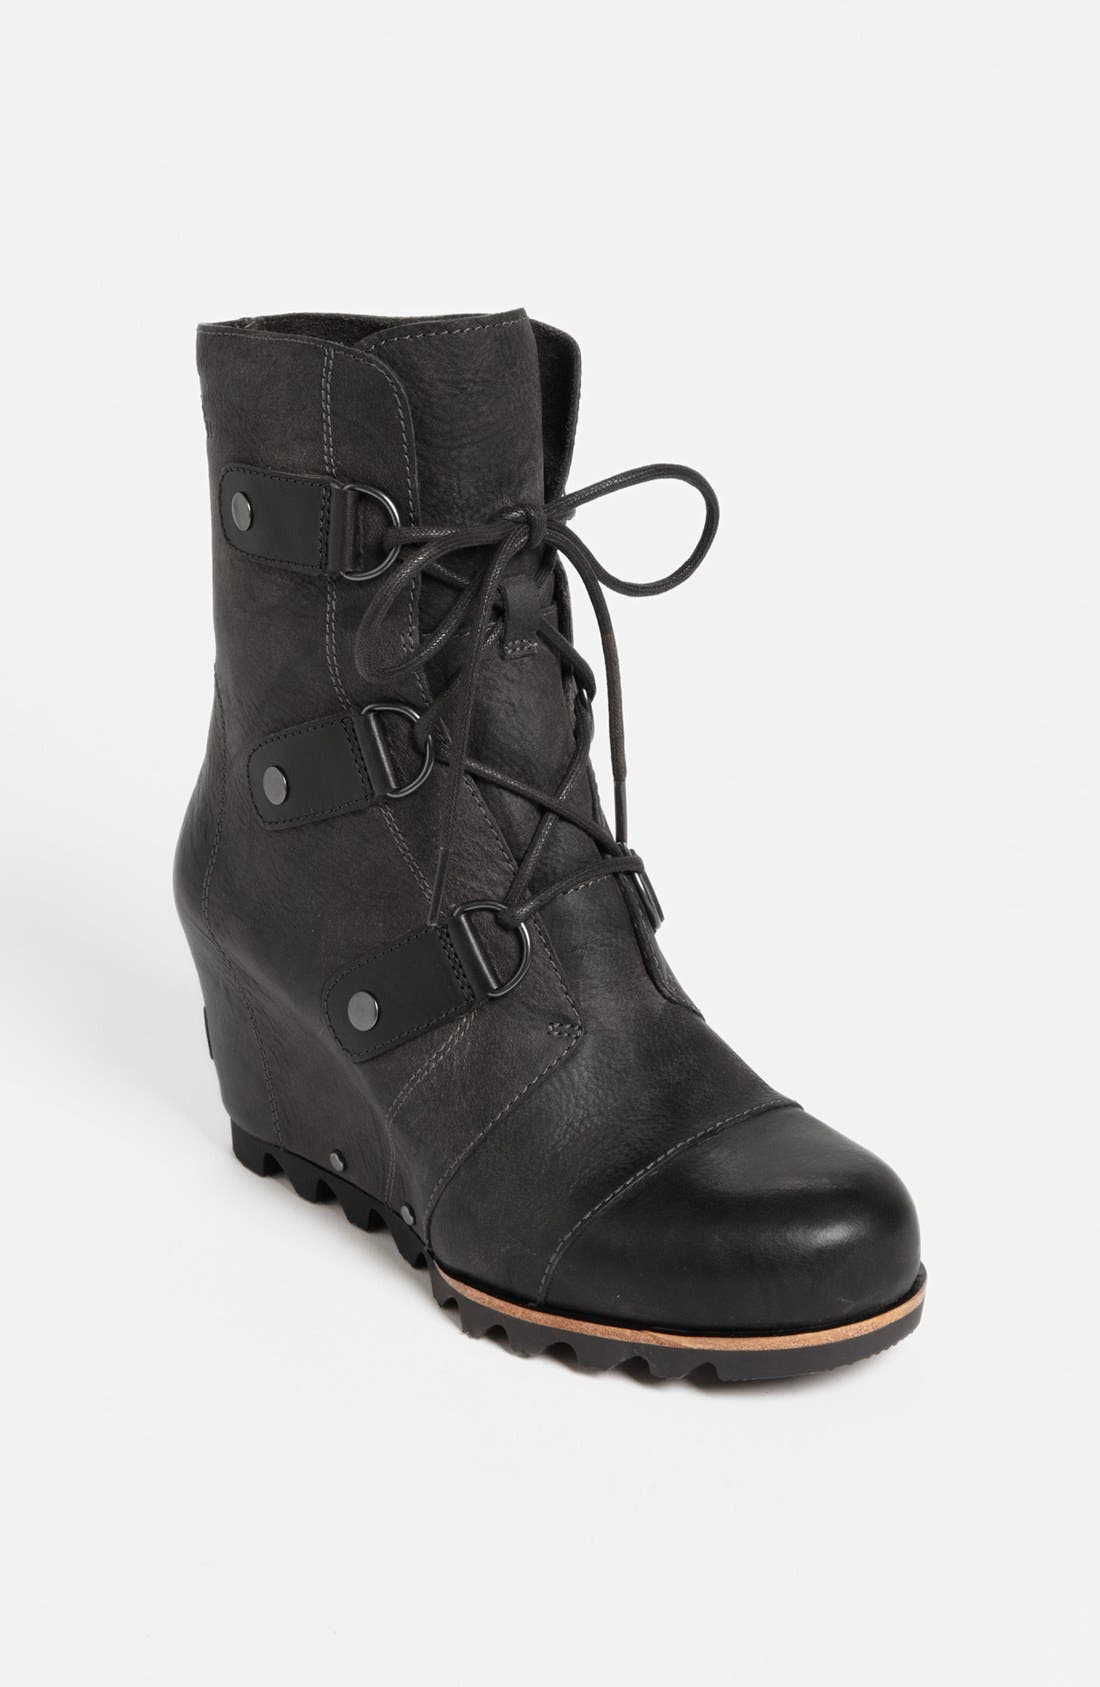 'Joan of Arctic' Wedge Boot,                             Main thumbnail 1, color,                             010